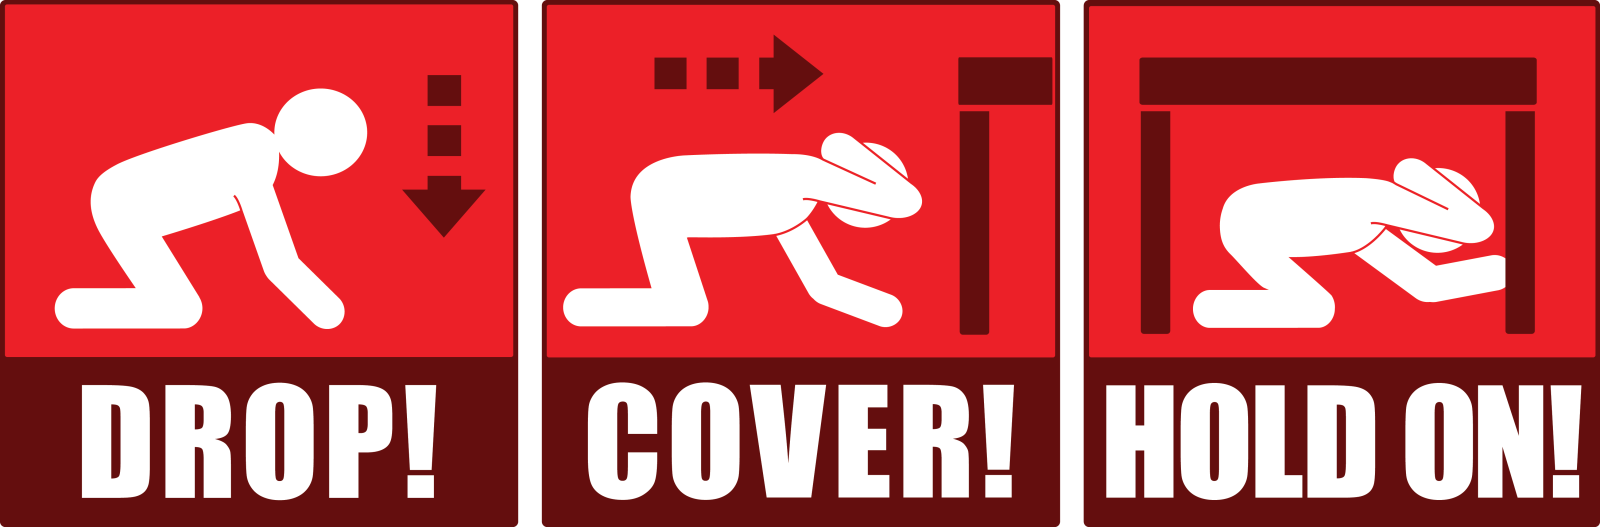 Graphic showing a person dropping to the ground, covering and protecting their body under the table, and holding on to the table during an earthquake